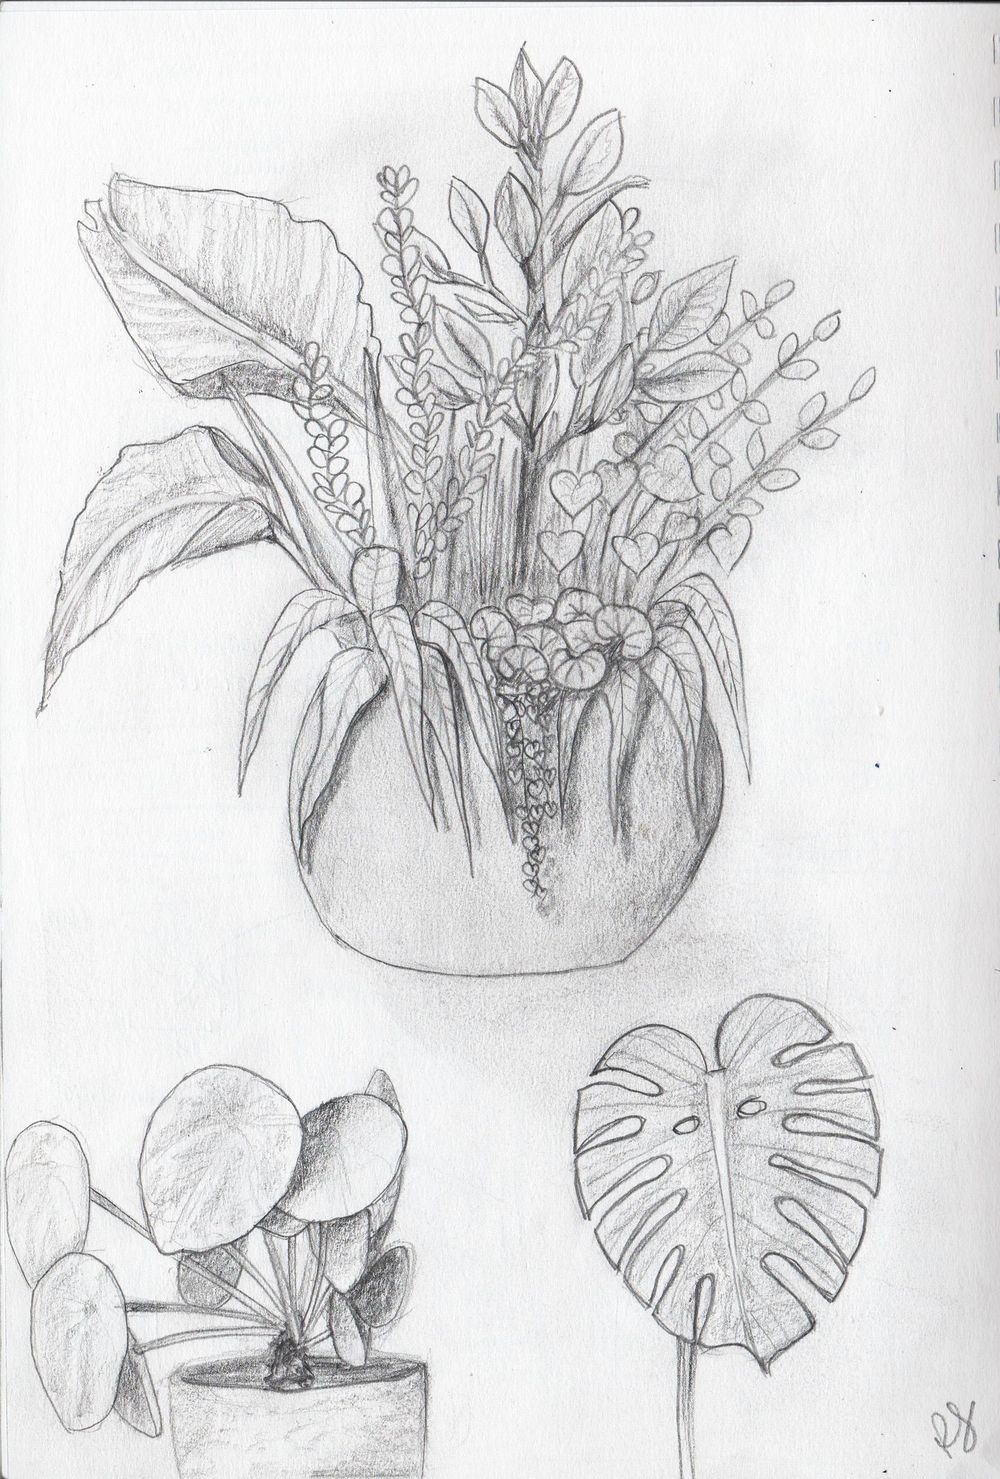 Drawing plants and leaves - image 2 - student project